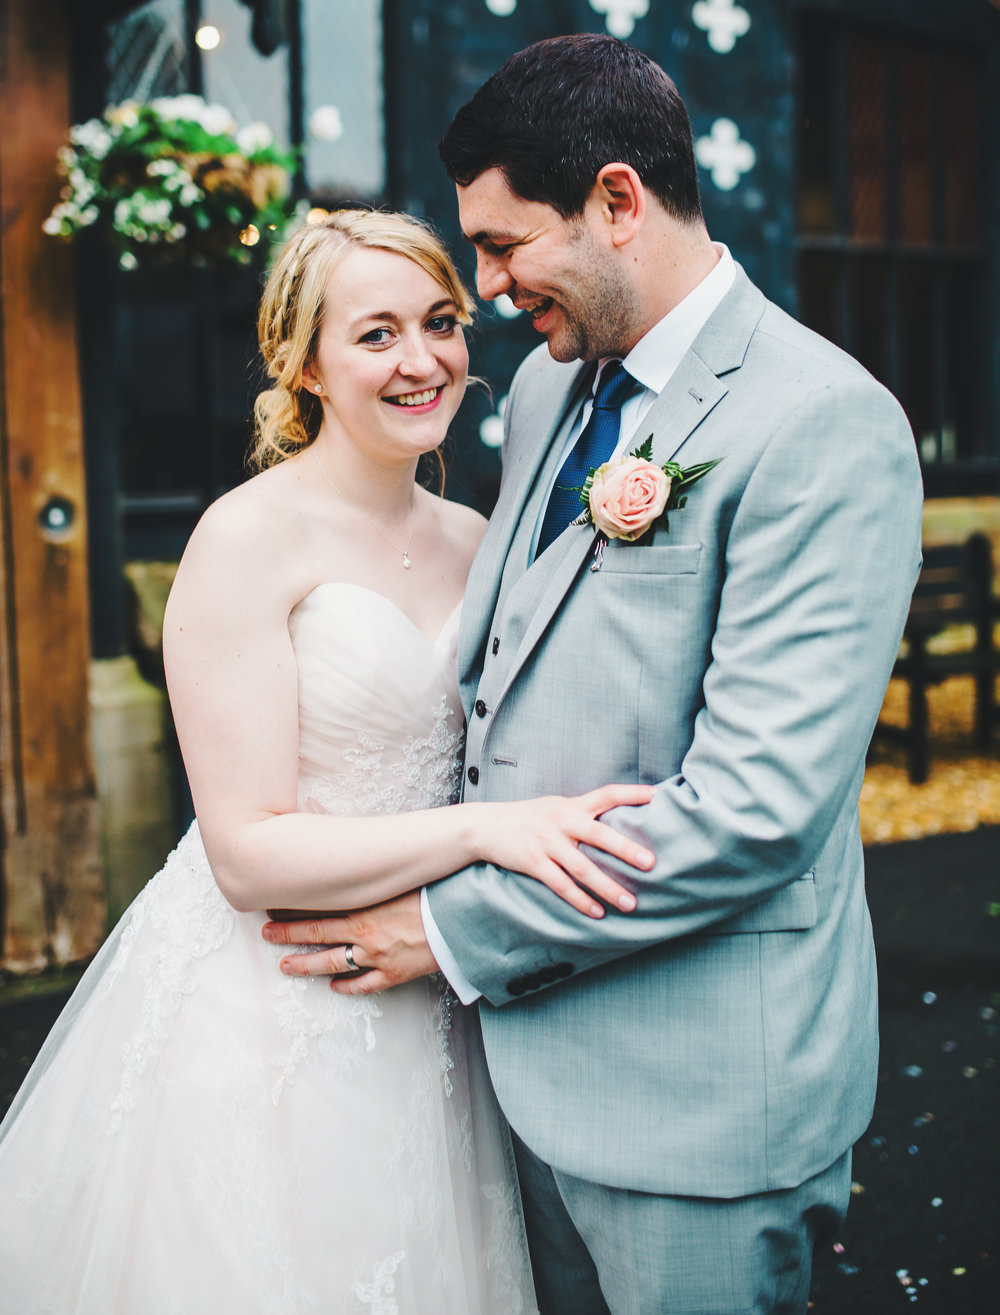 Portrait of the bride and groom outside- Creative wedding photography